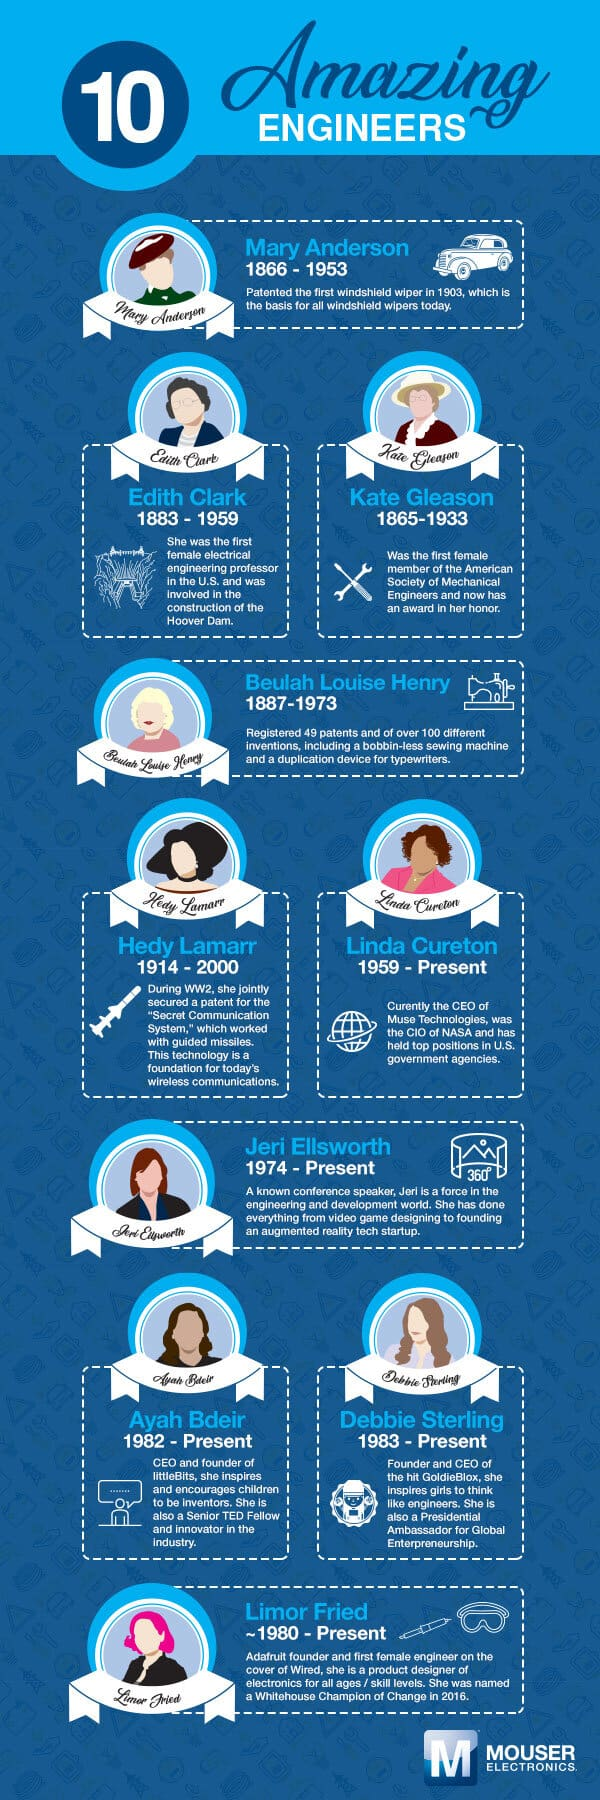 Ten female engineers and their amazing achievements